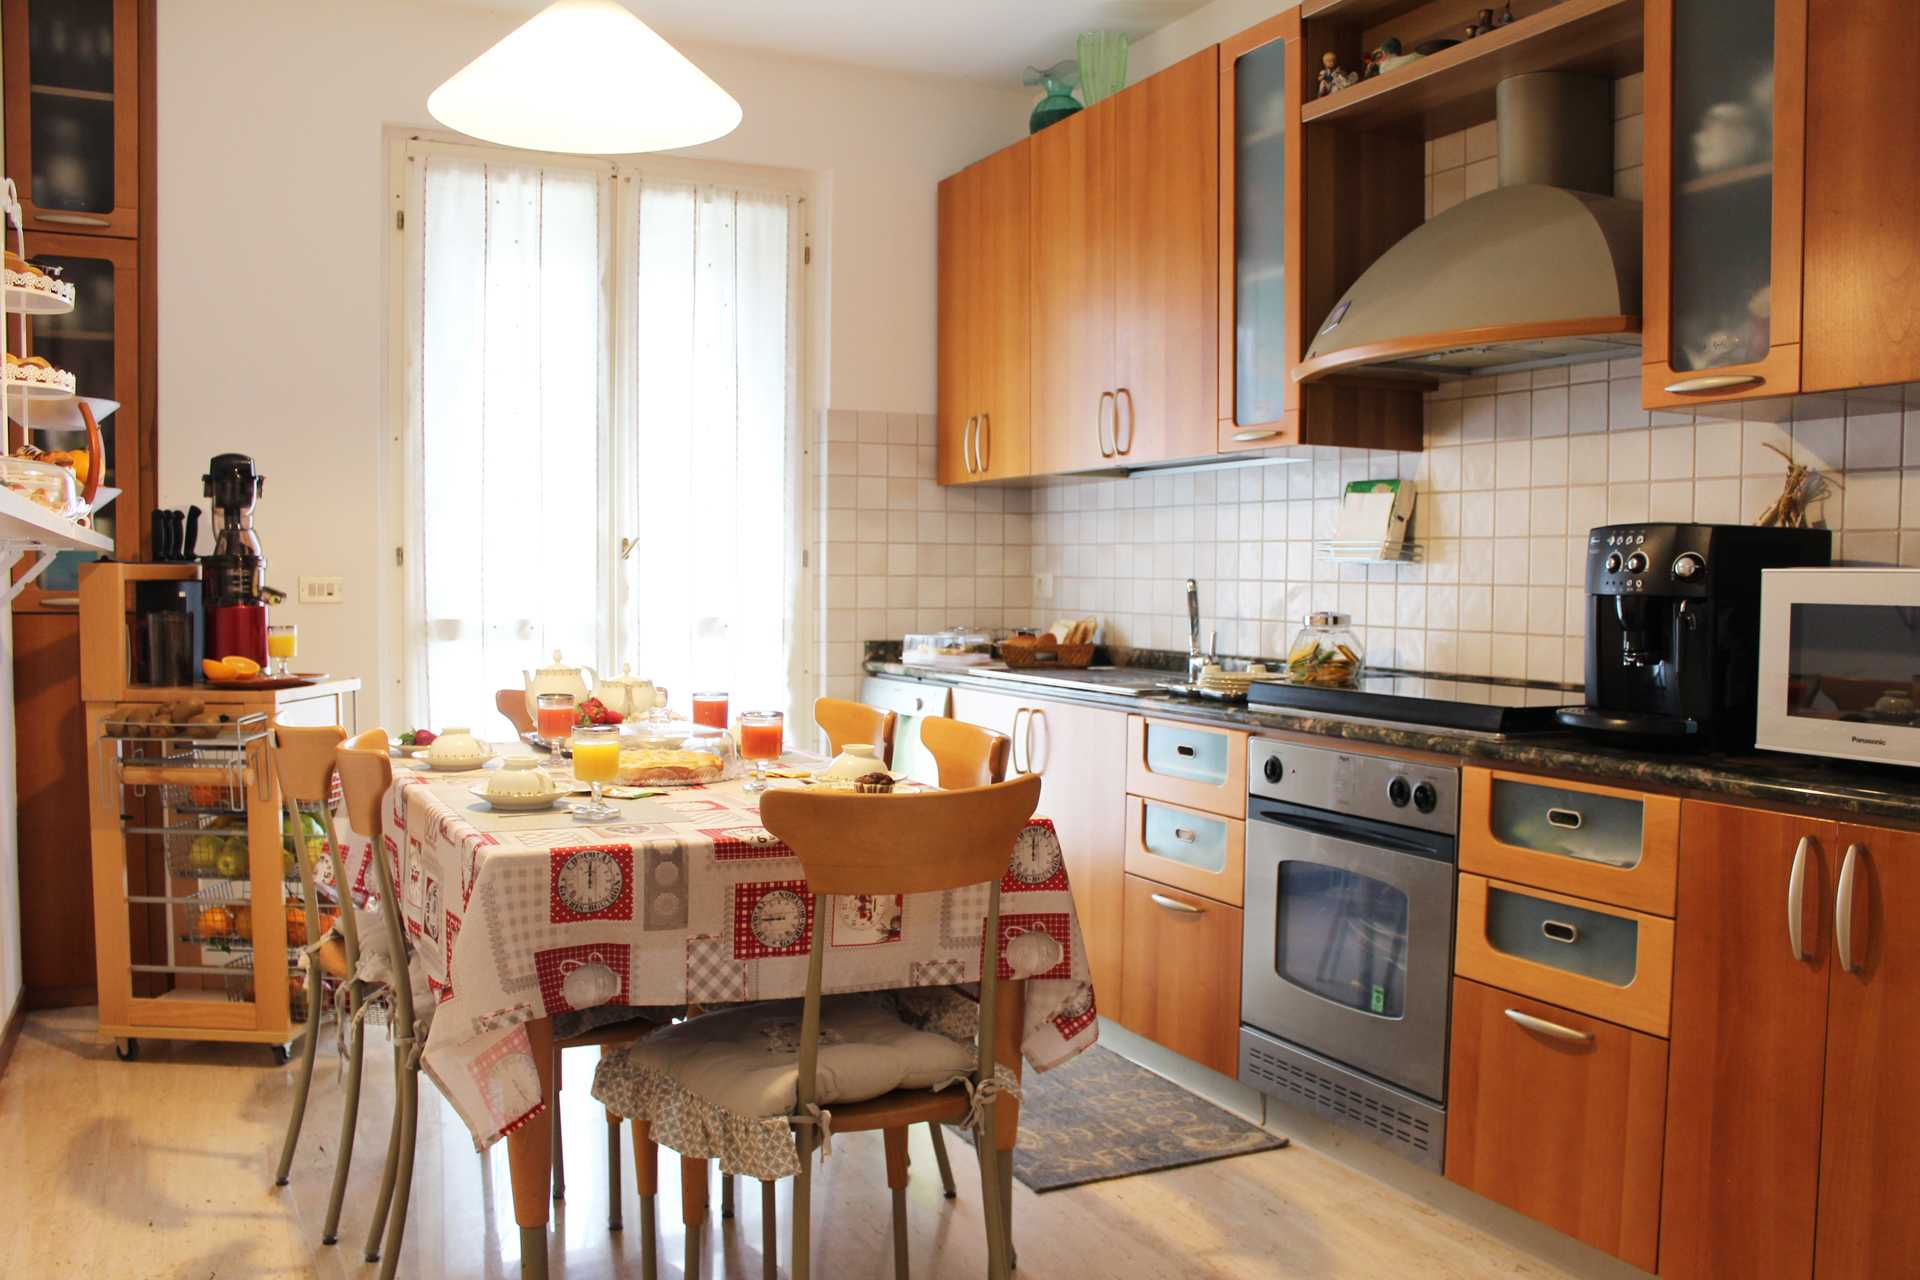 Cucina Bed and Breakfast Villa Lilla a San Benedetto del Tronto